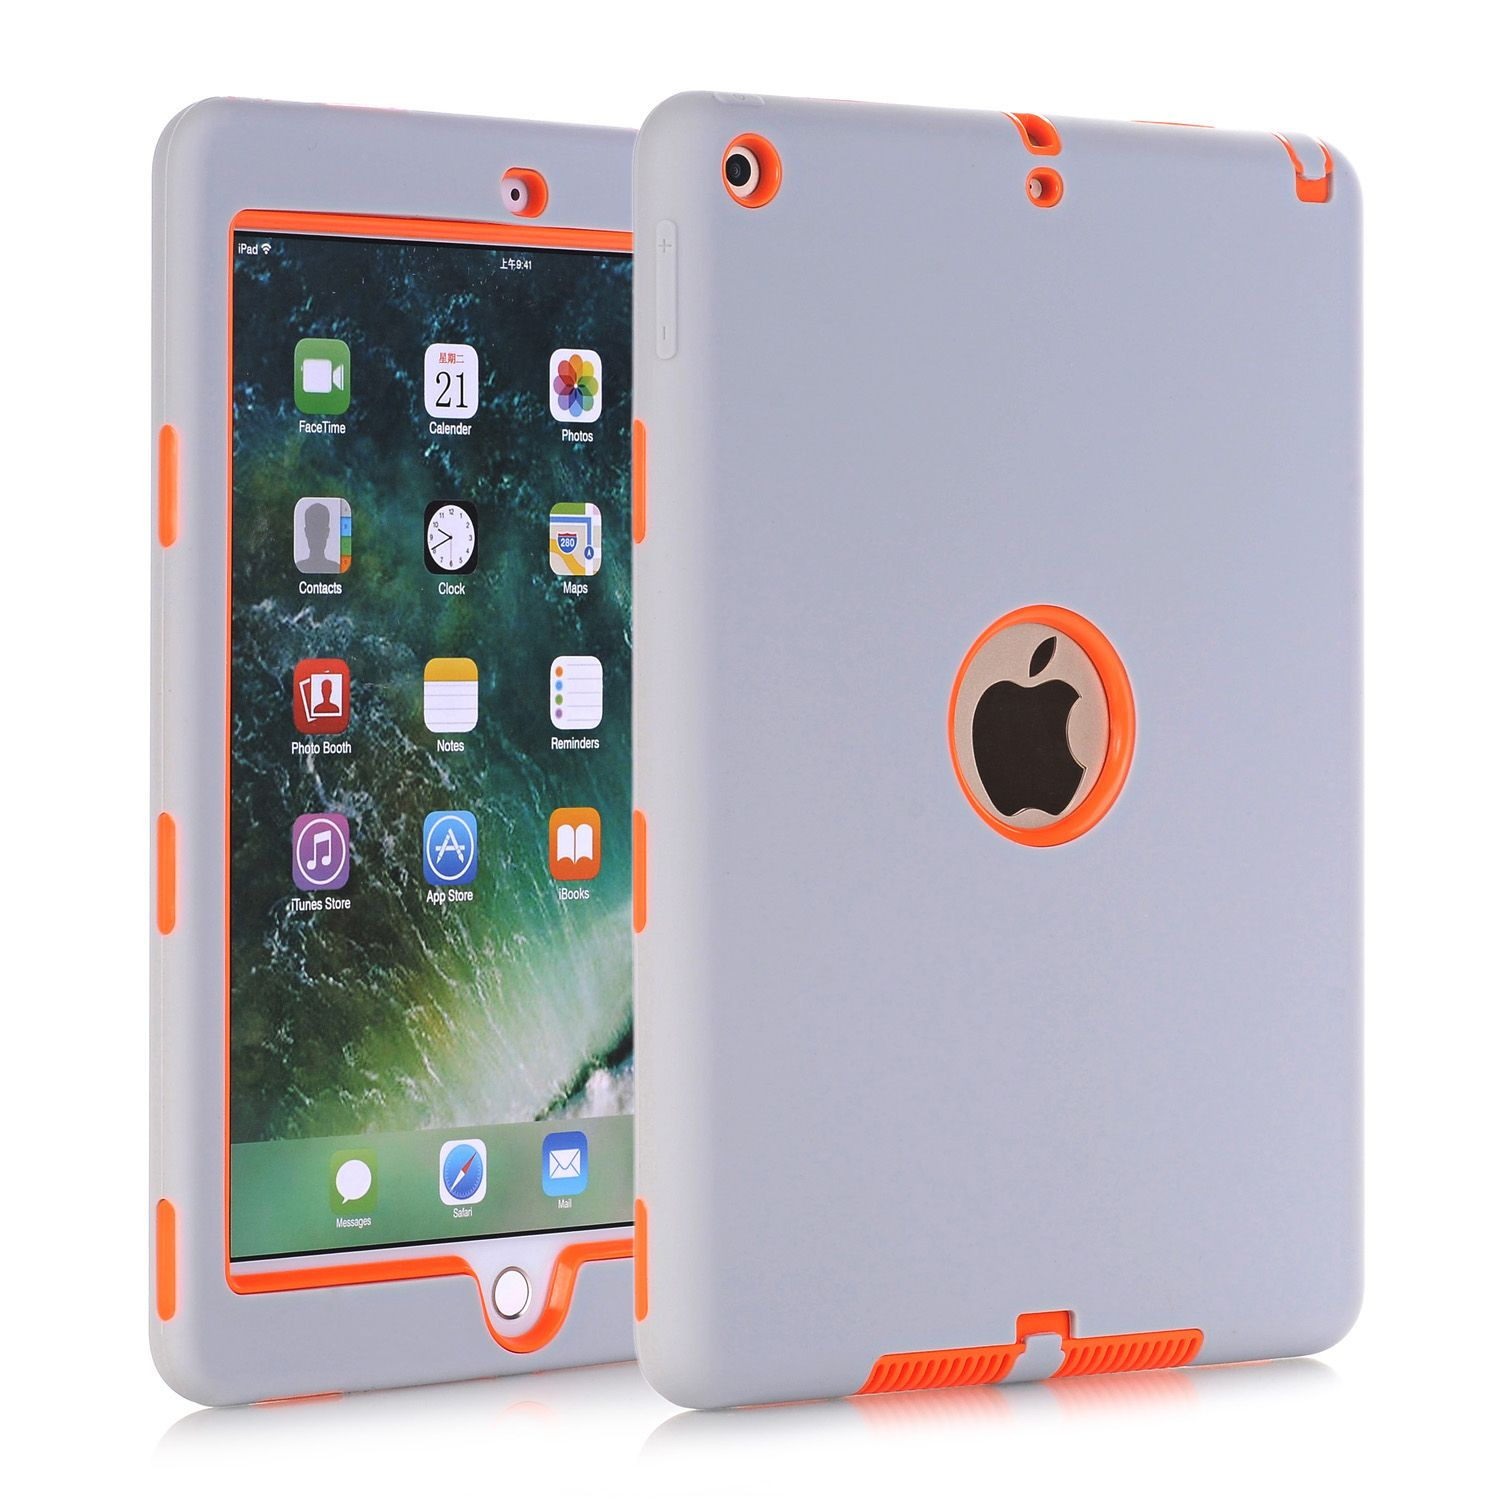 Cases For New iPad 9.7 2017 (A1822/A1823),High-Impact Shockproof 3 Layers Soft <font><b>Rubber</b></font> Silicone+Hard PC Protective Cover Shell